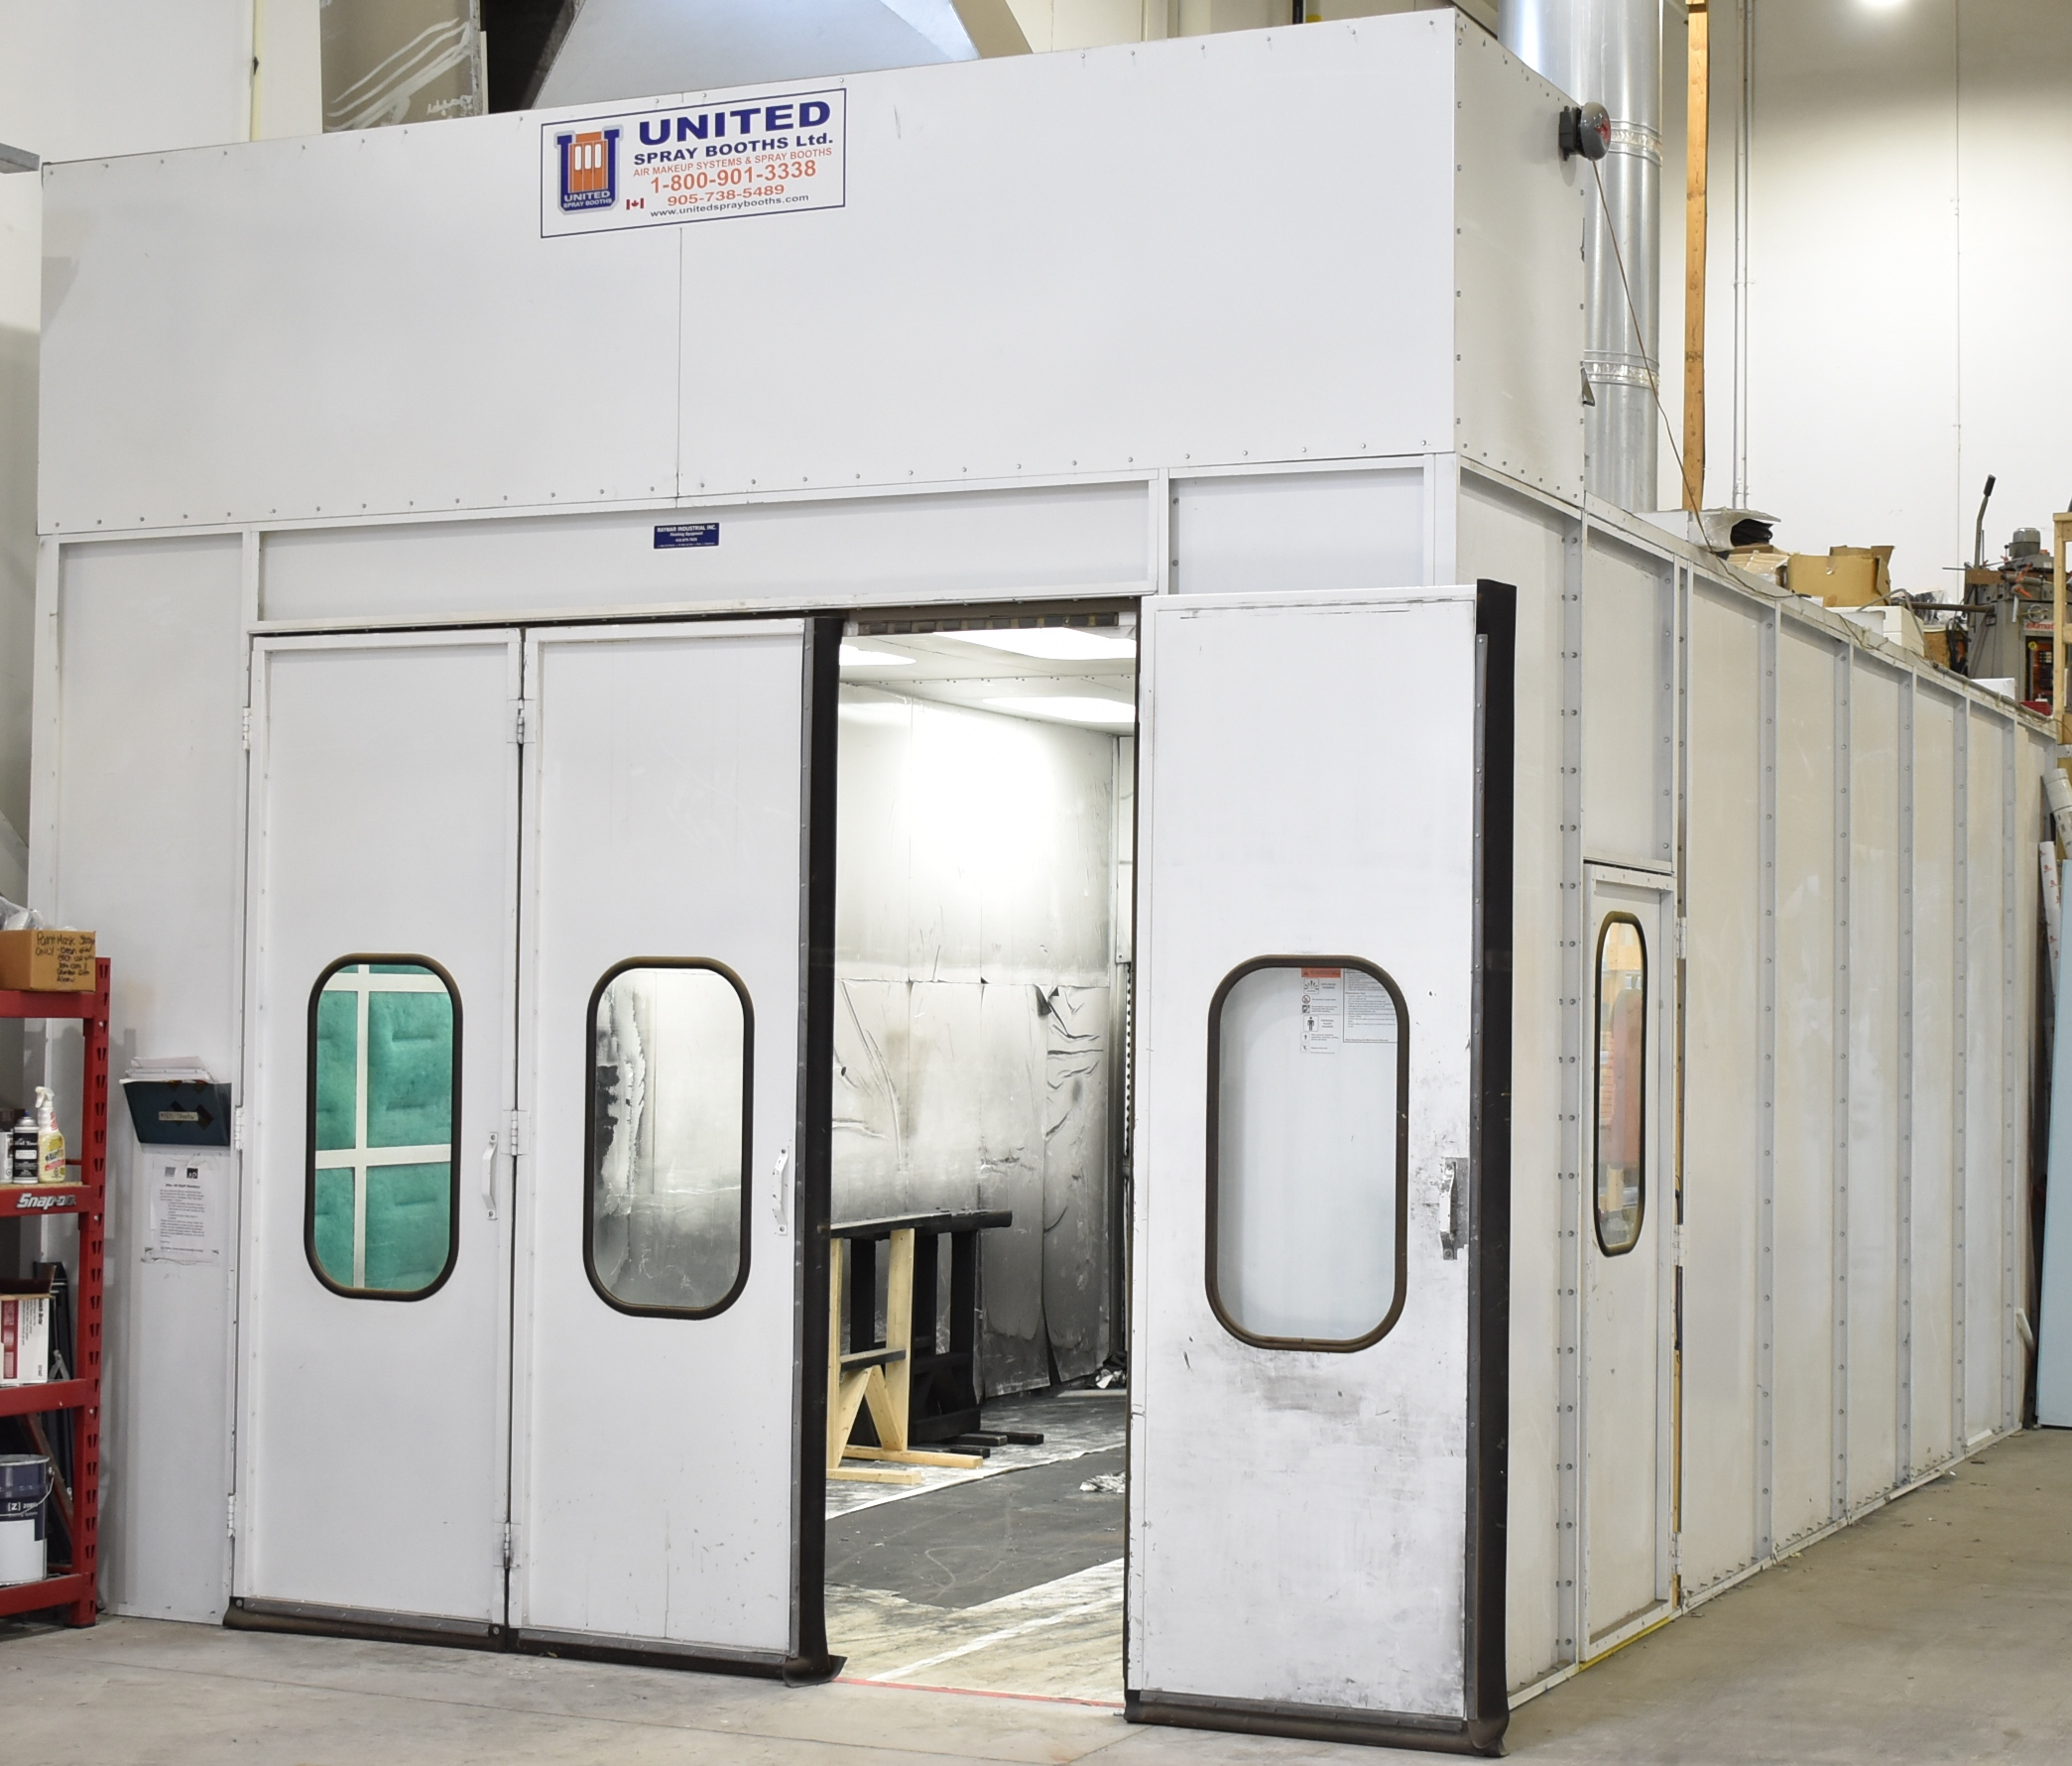 UNITED SB 24.5'L X 10'H X 14'W CROSS DRAFT SPRAY AND FINISHING BOOTH WITH RAYMAR INDUSTRIAL